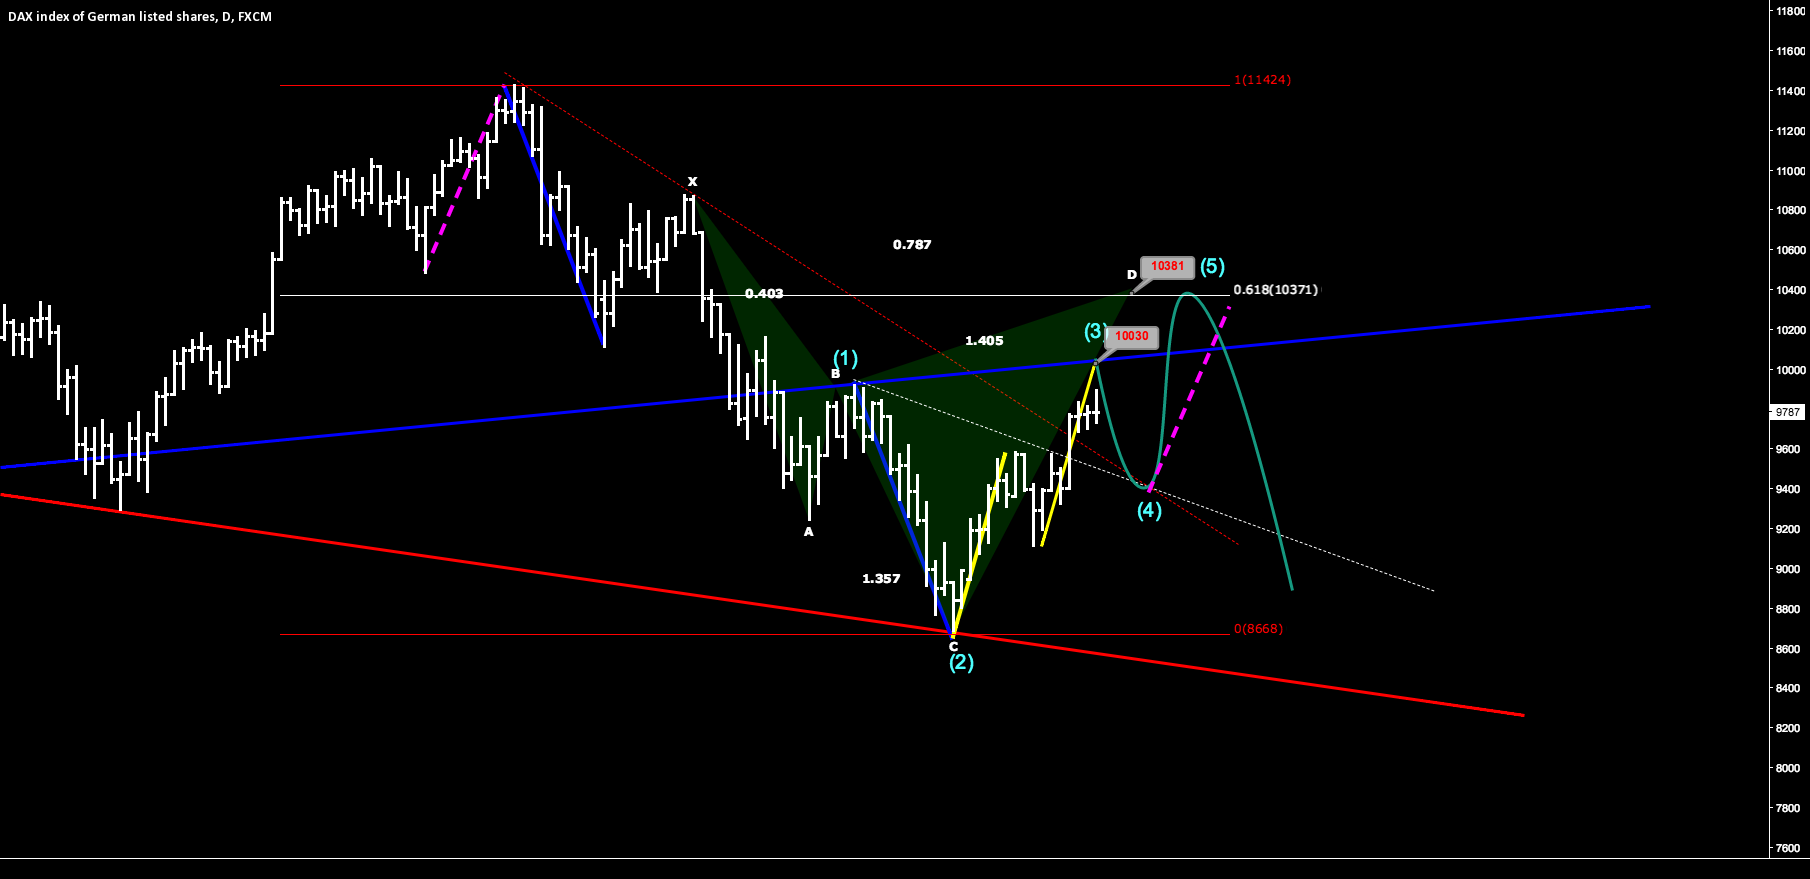 DAX due to a correction